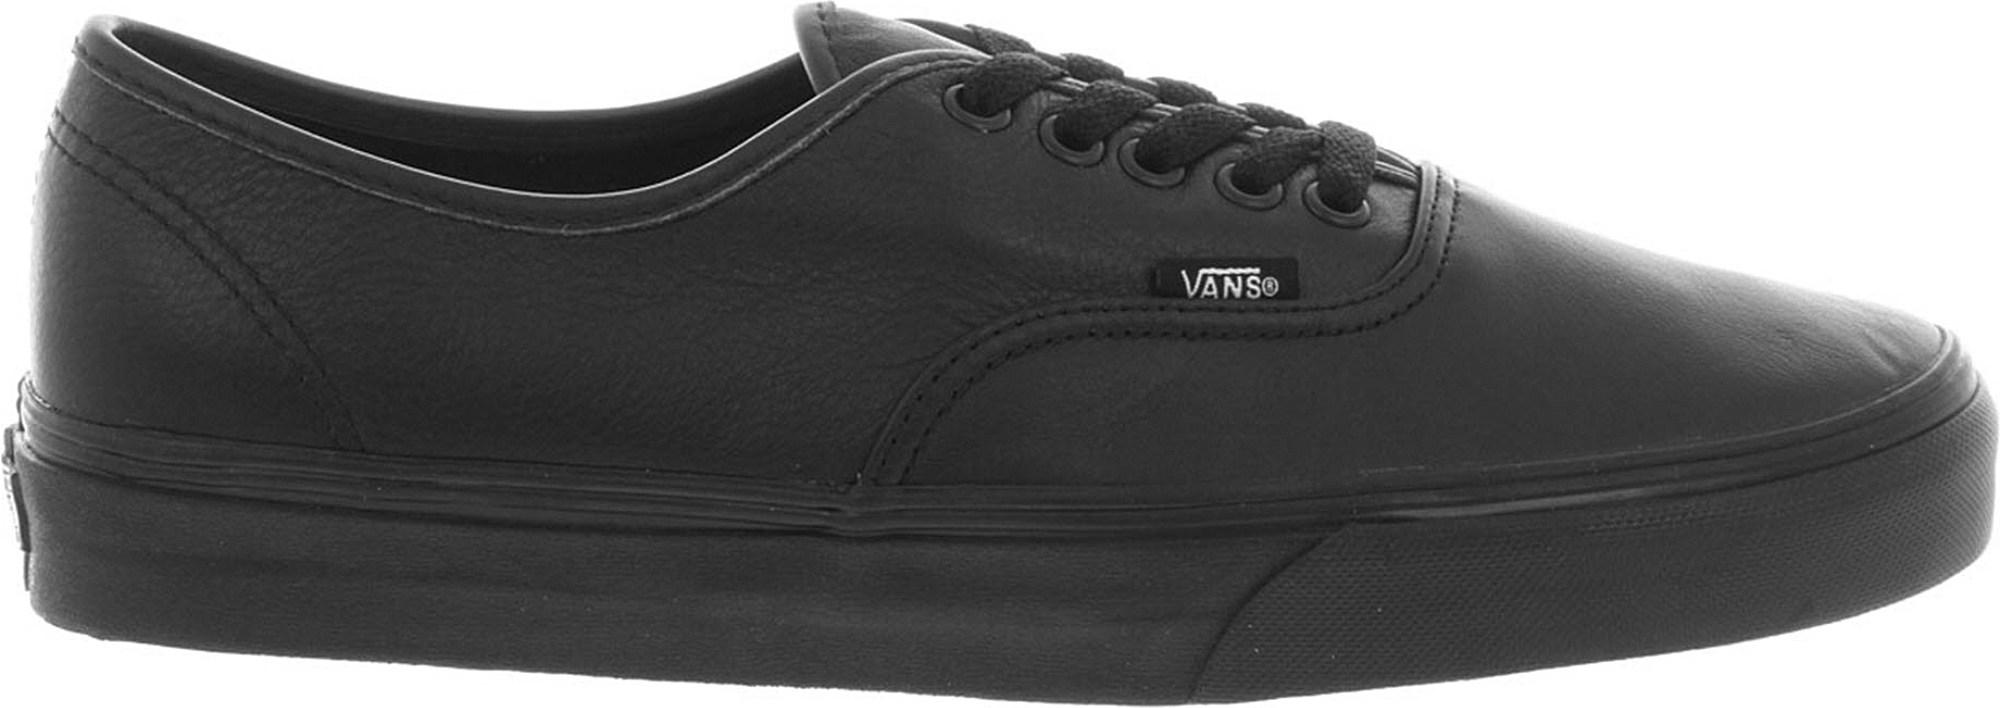 Lyst - Vans Authentic Leather Trainers in Black for Men 995e95dd29c0